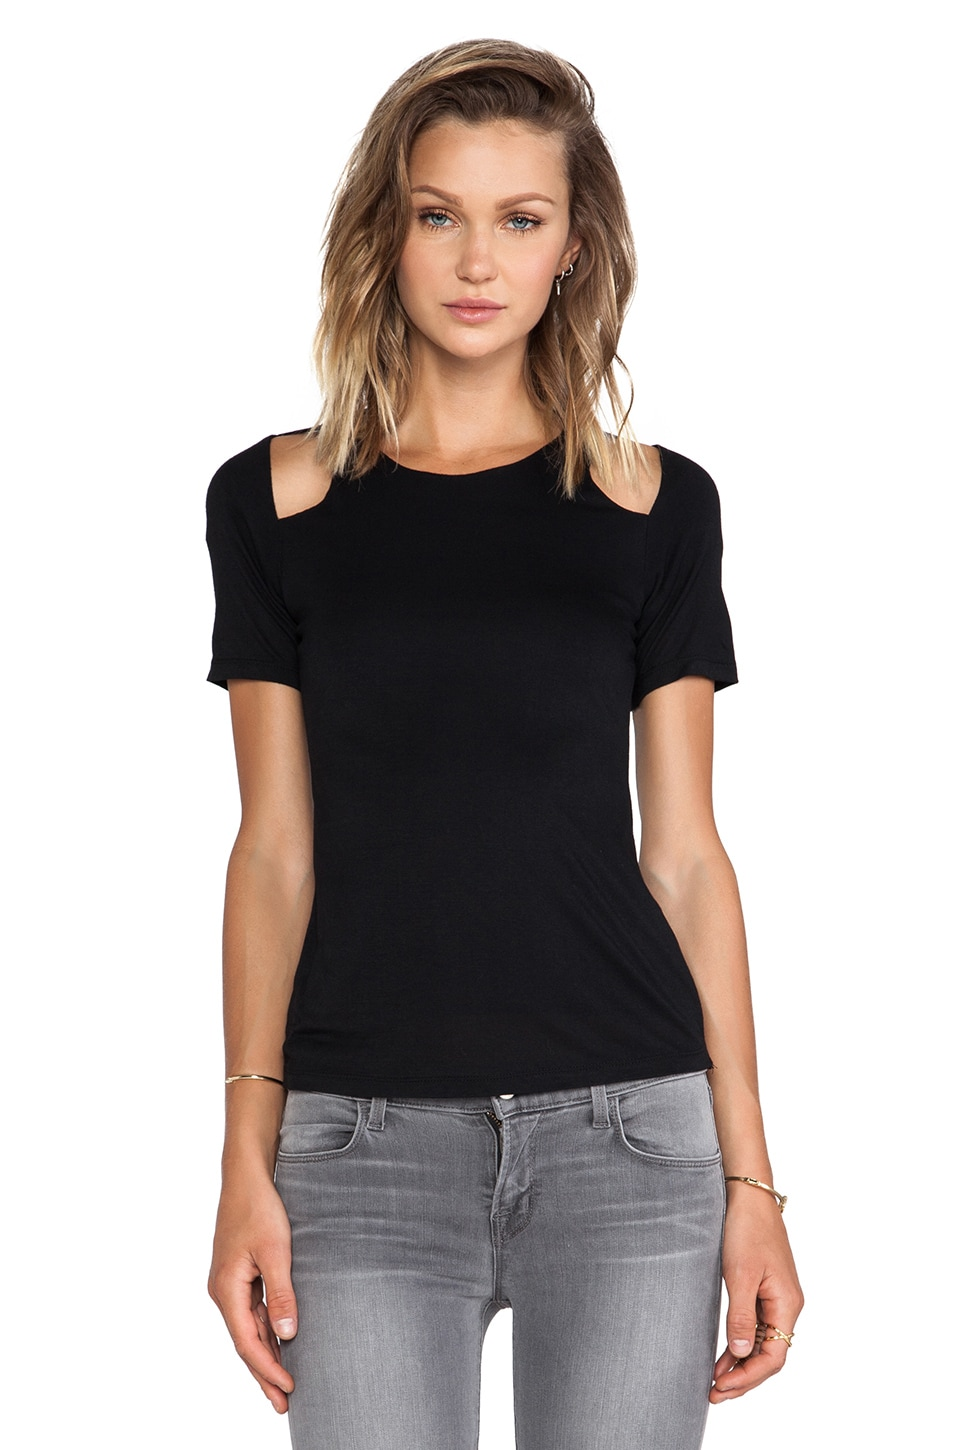 Ladakh Chill Out Top in Black